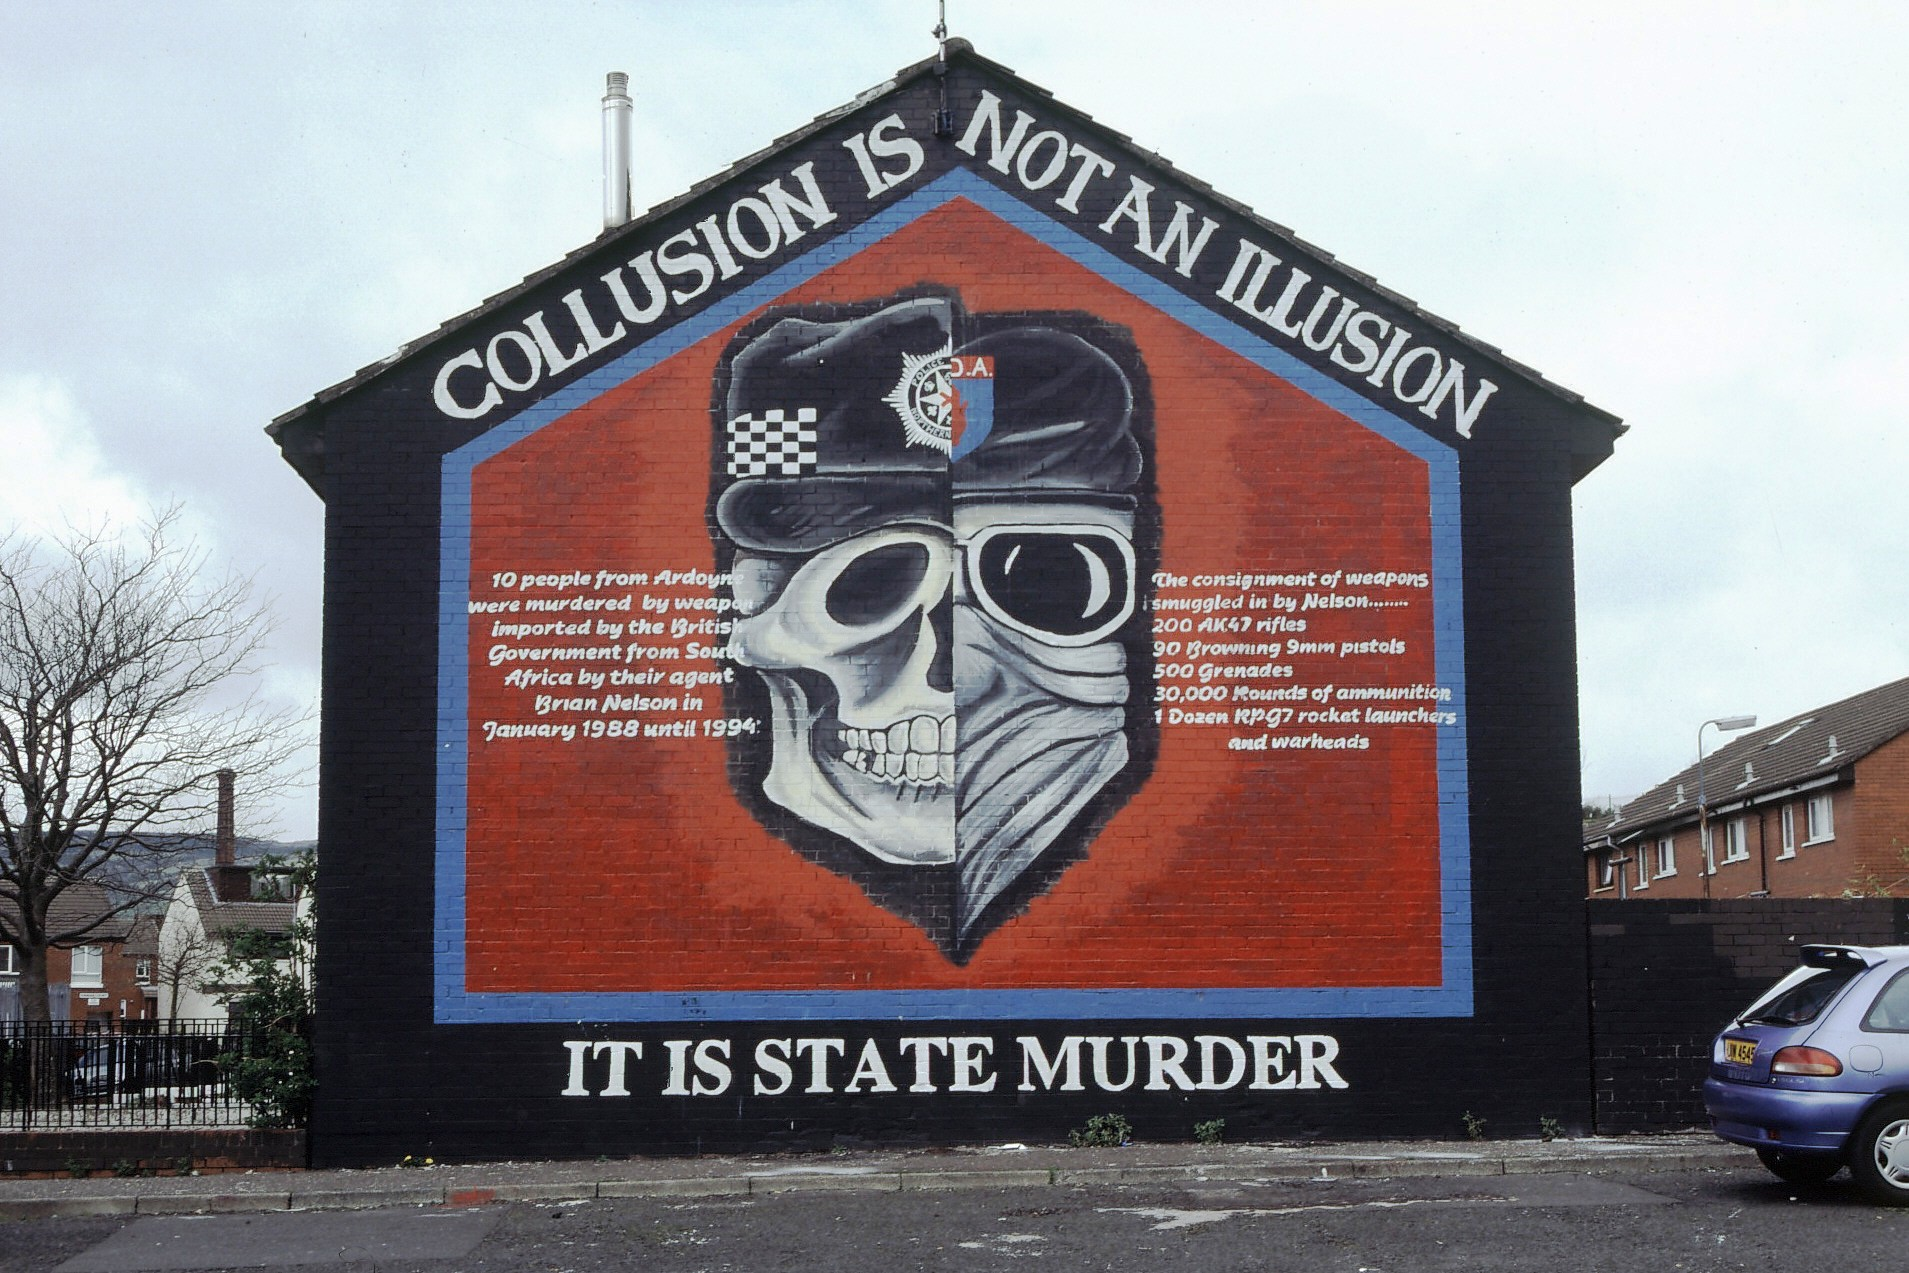 One of the famous gable ends that can still be found in many parts of Northern Ireland. These murals often depict fighters from one of the paramilitary organizations, such as the Republican IRA or a Loyalist group. This particular mural in a traditional Catholic neighborhood reflects the belief among the community that the police acted in league with Protestant paramilitary organizations.